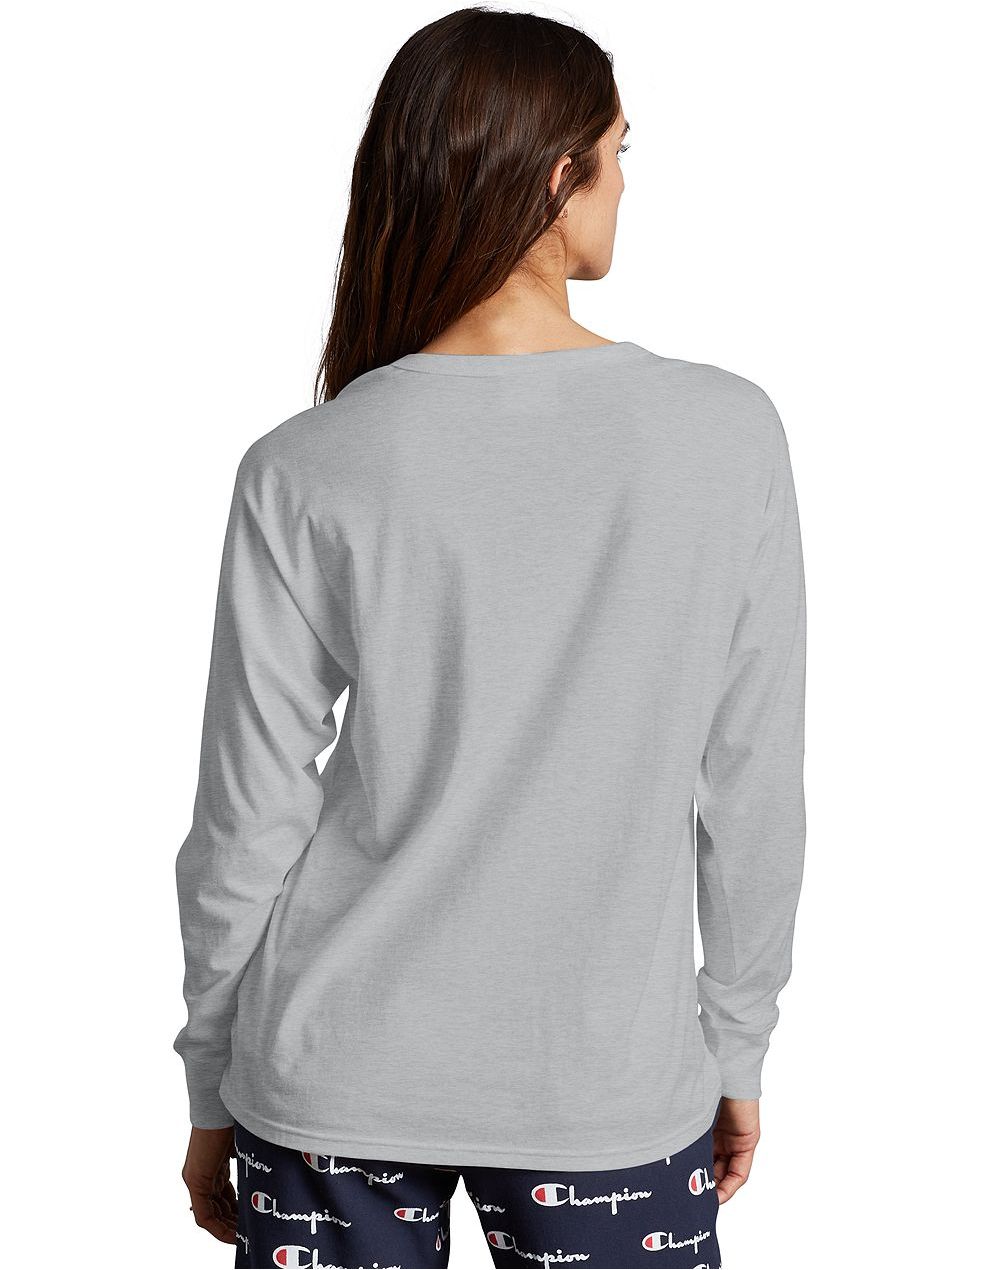 The Boyfriend L/S Tee - Direct Flock Script-L/S Top-Champion Women-Coda & Cade